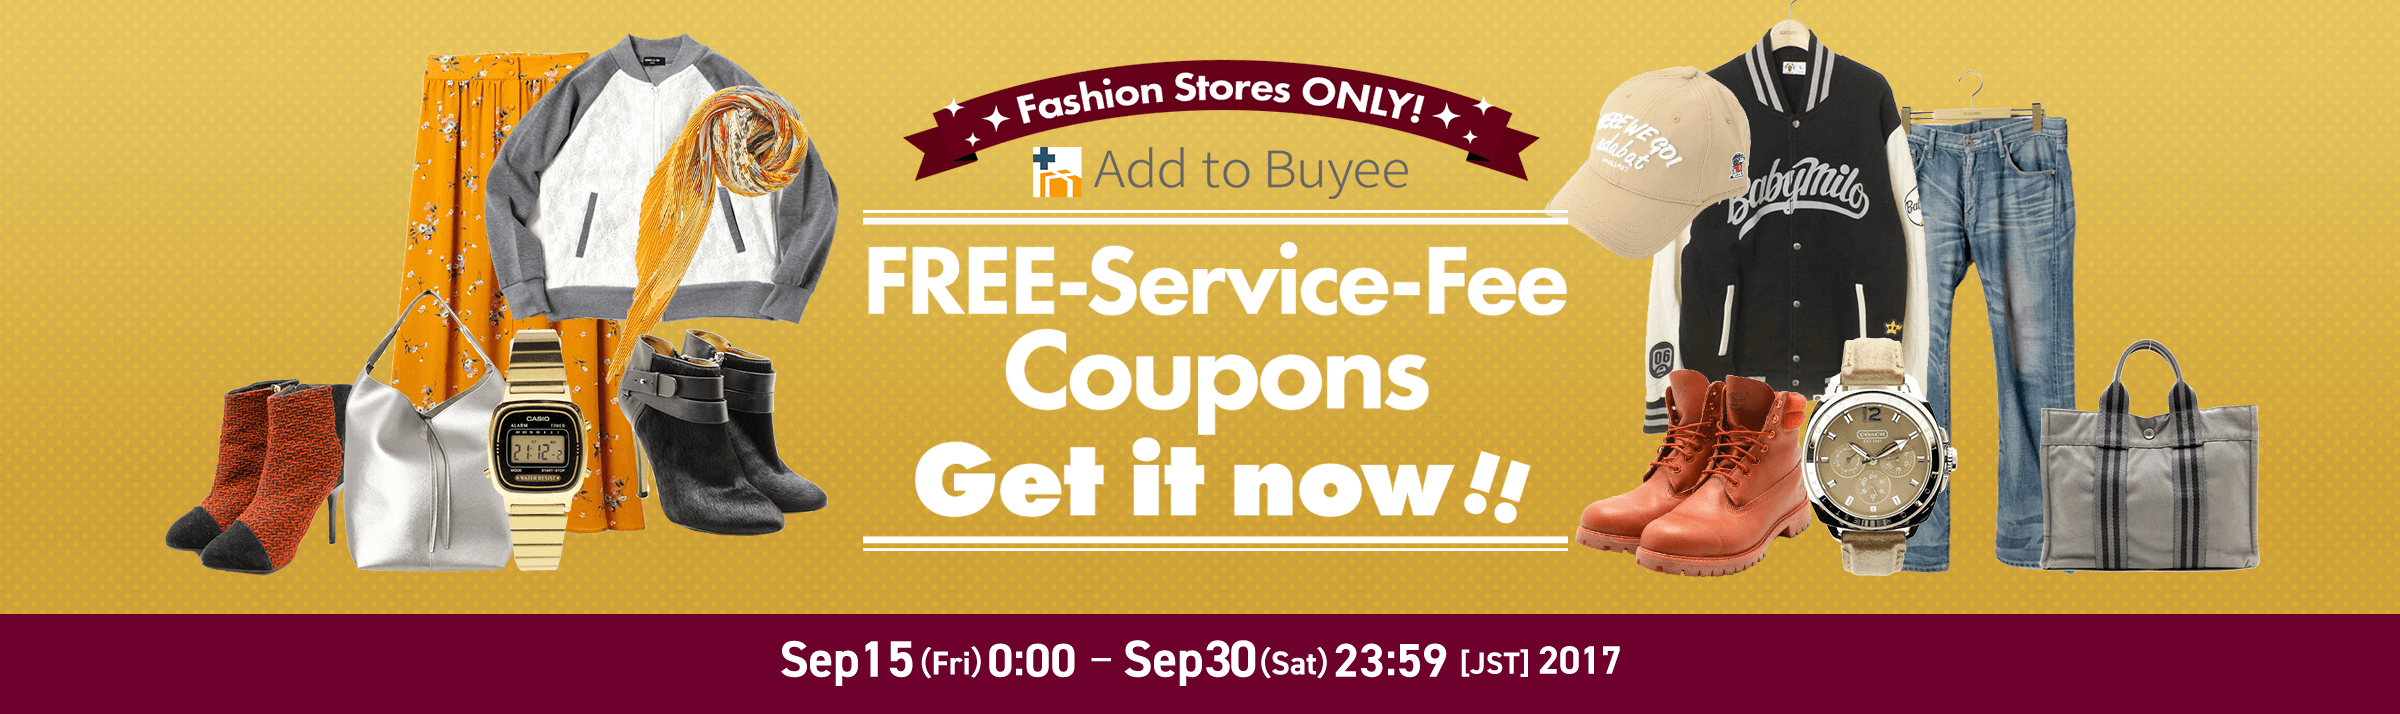 Limited Promo for Fashion Stores Free-service-fee Coupons Get it now!!